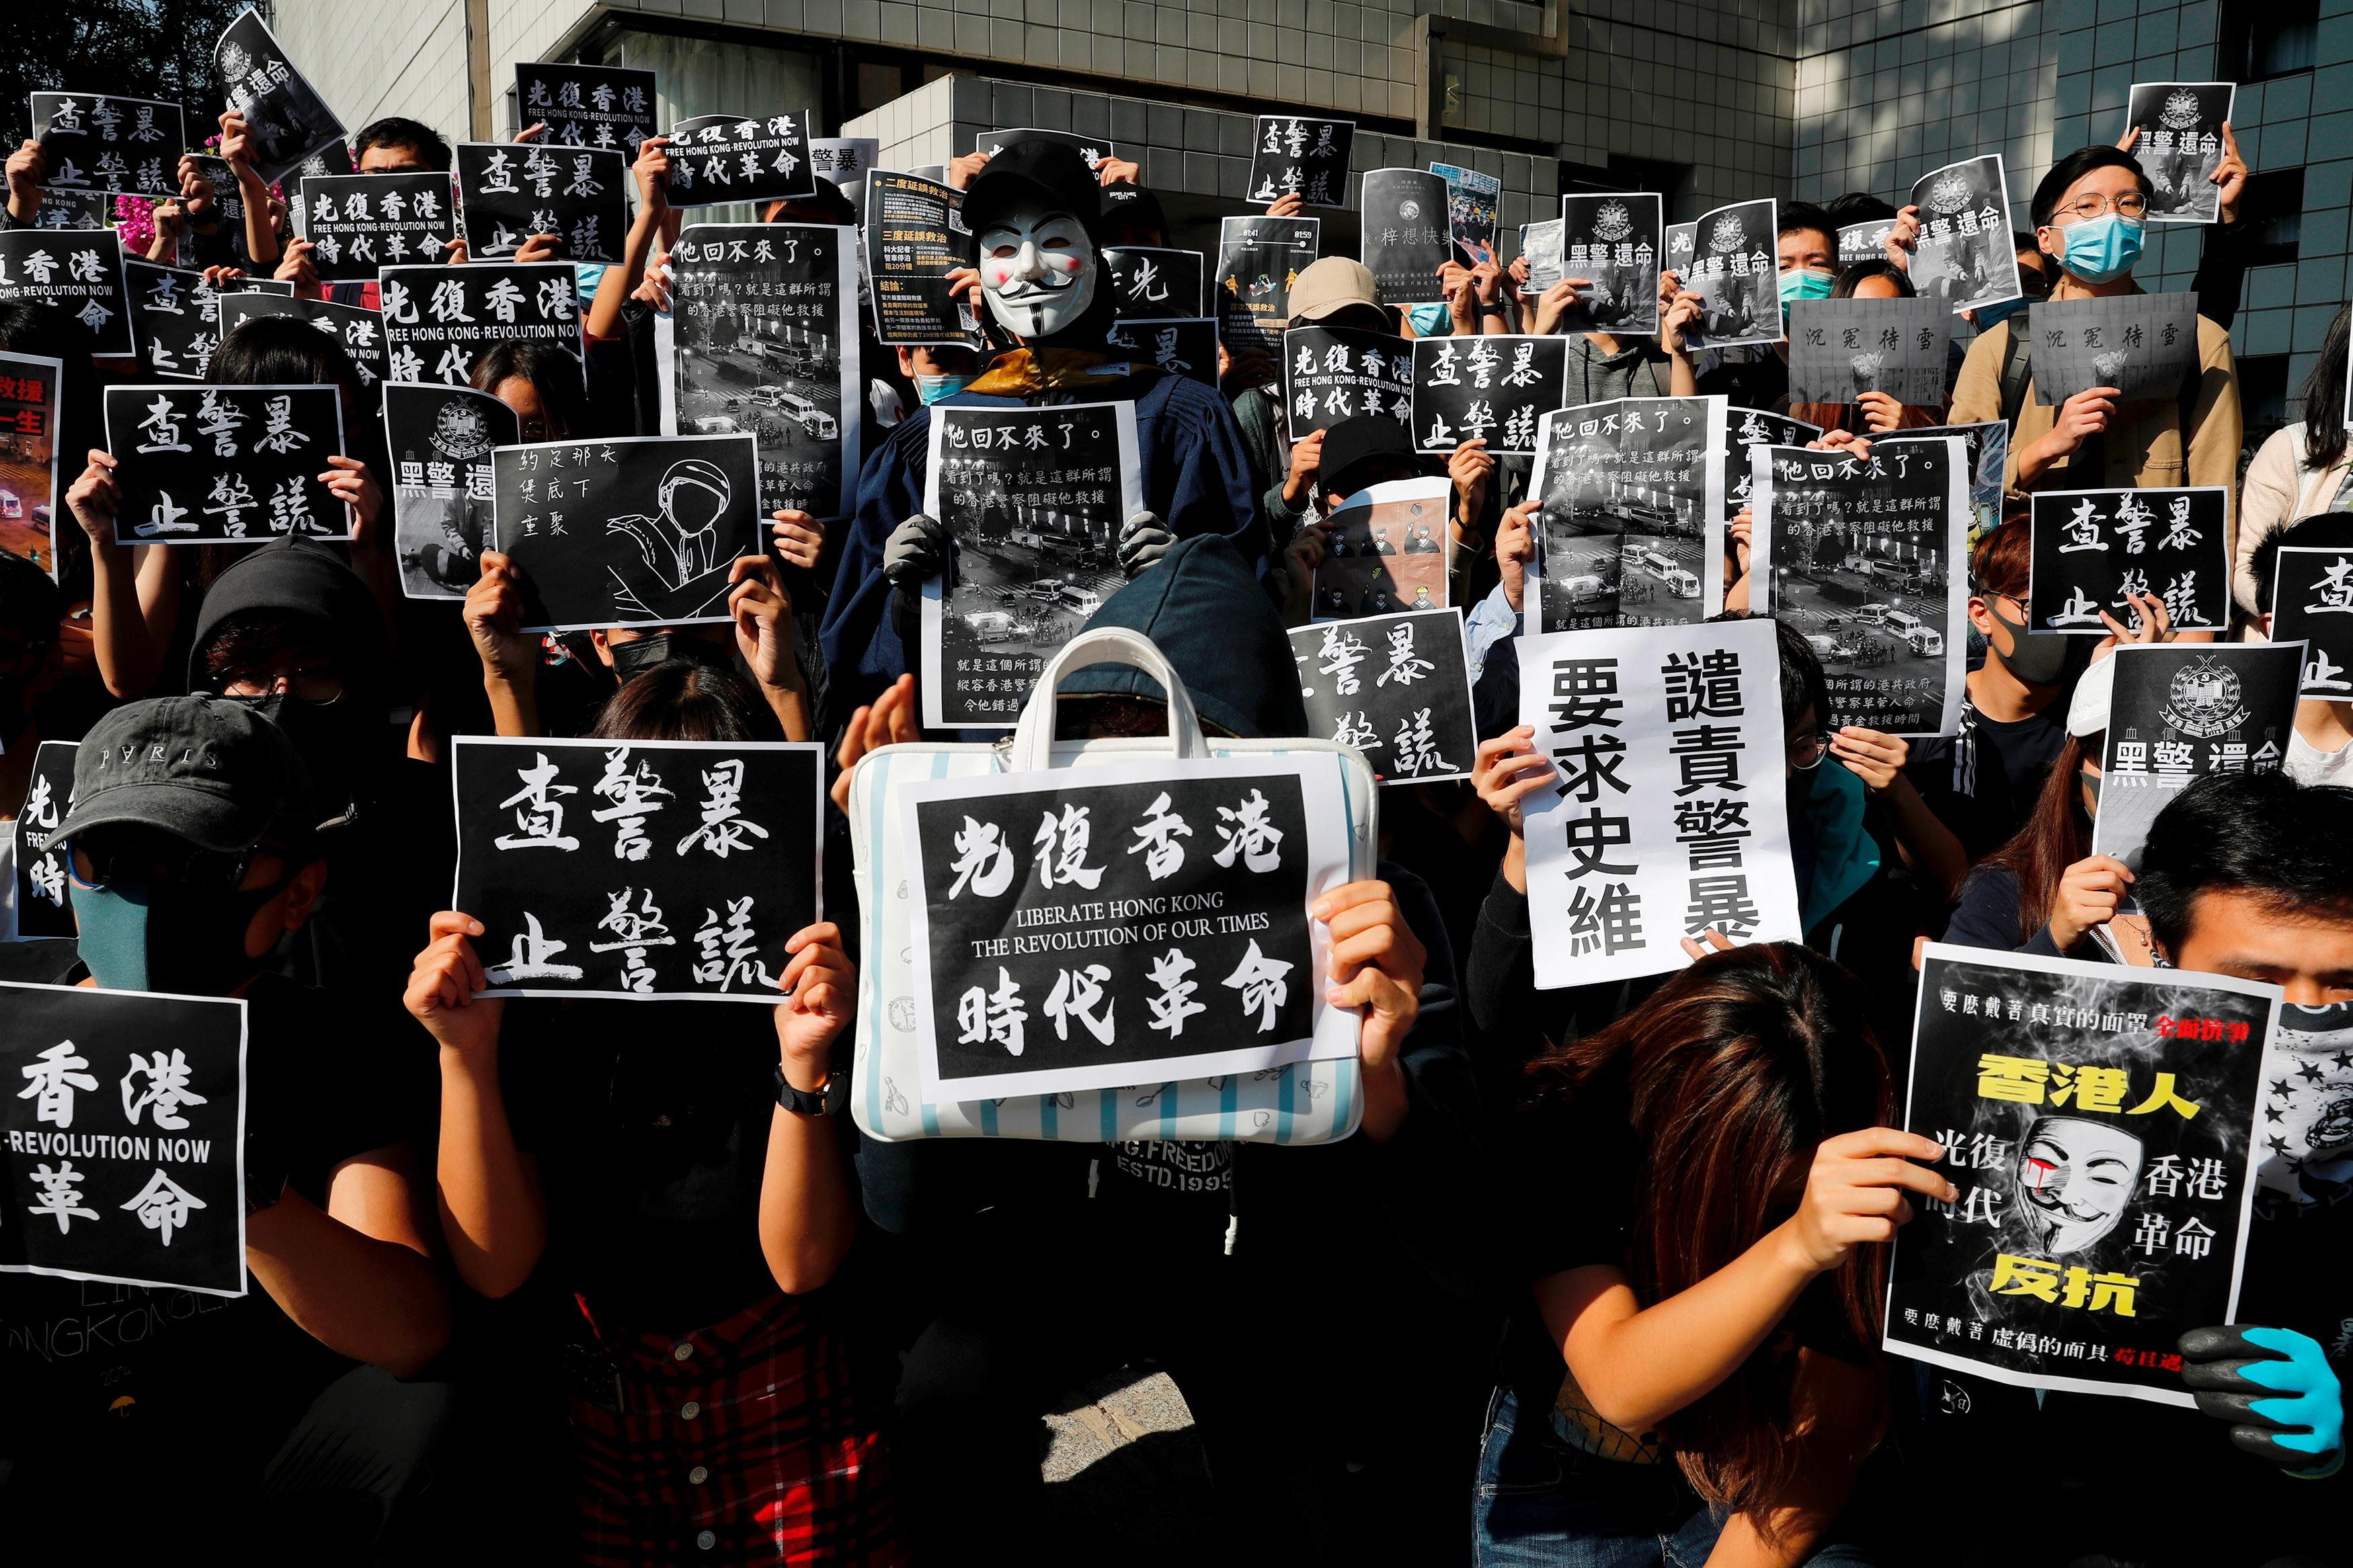 Hong Kong mourning for student spirals into street violence